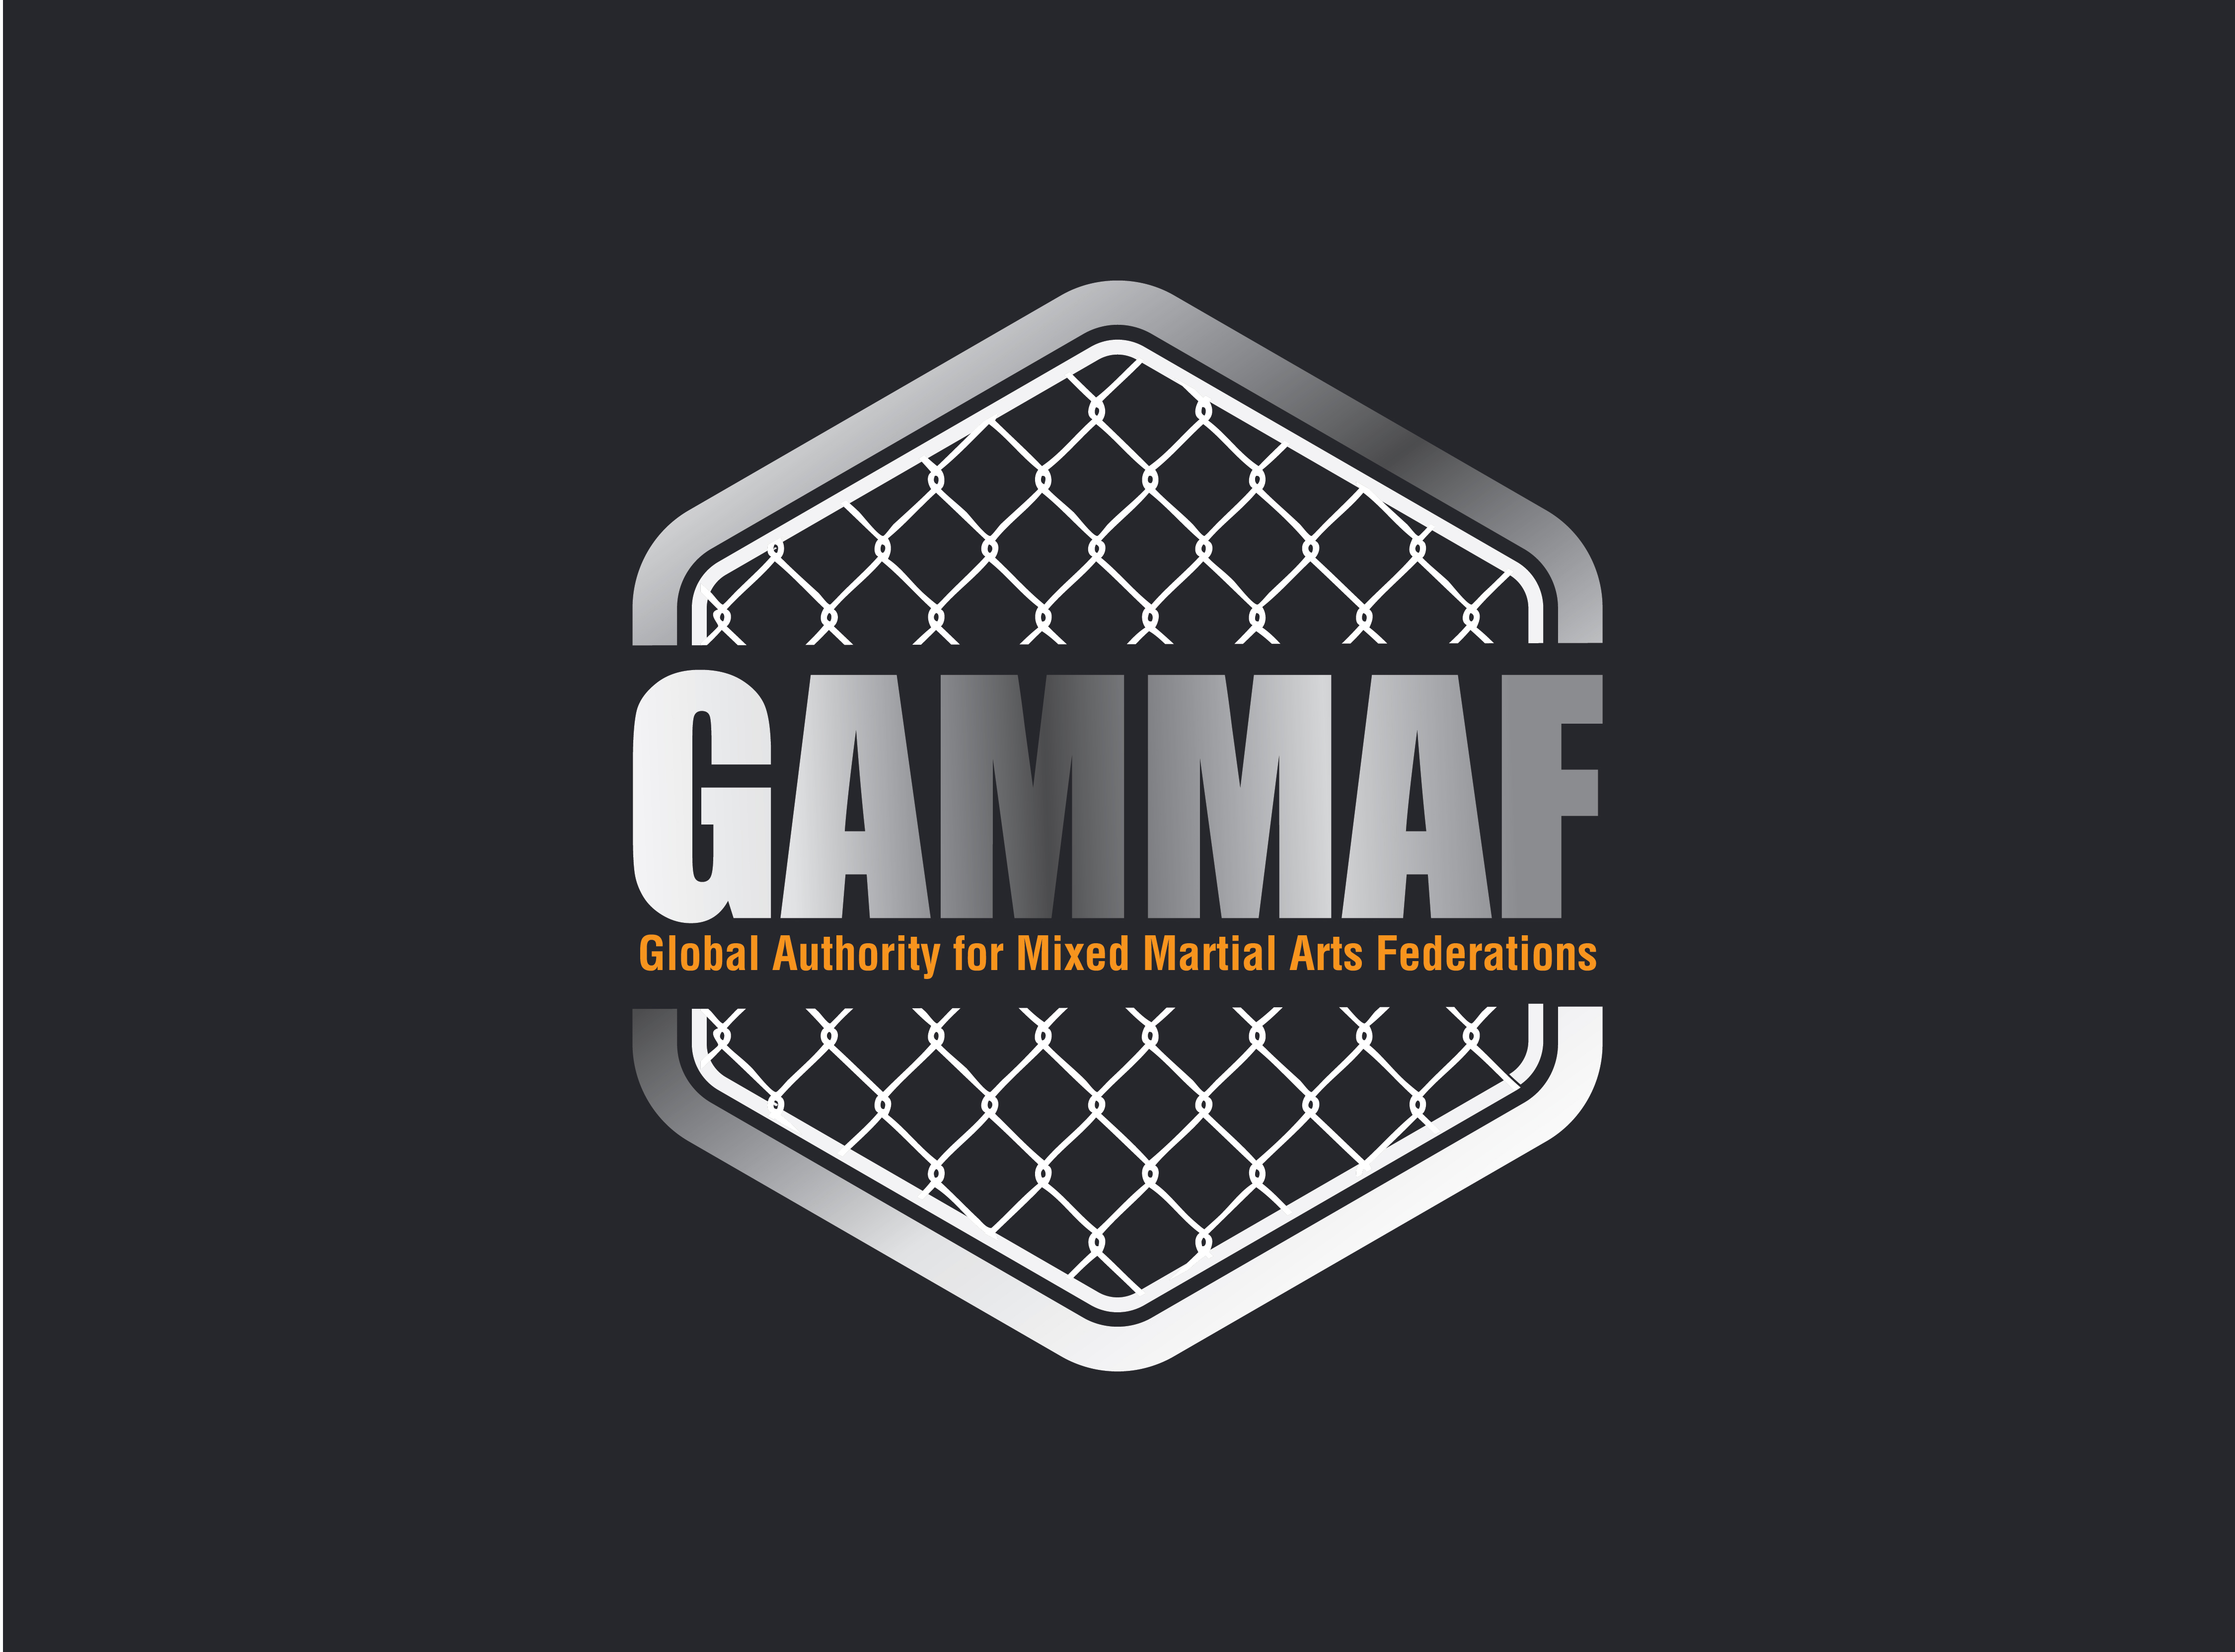 GAMMAF – New Global Authority Unveiled For MMA